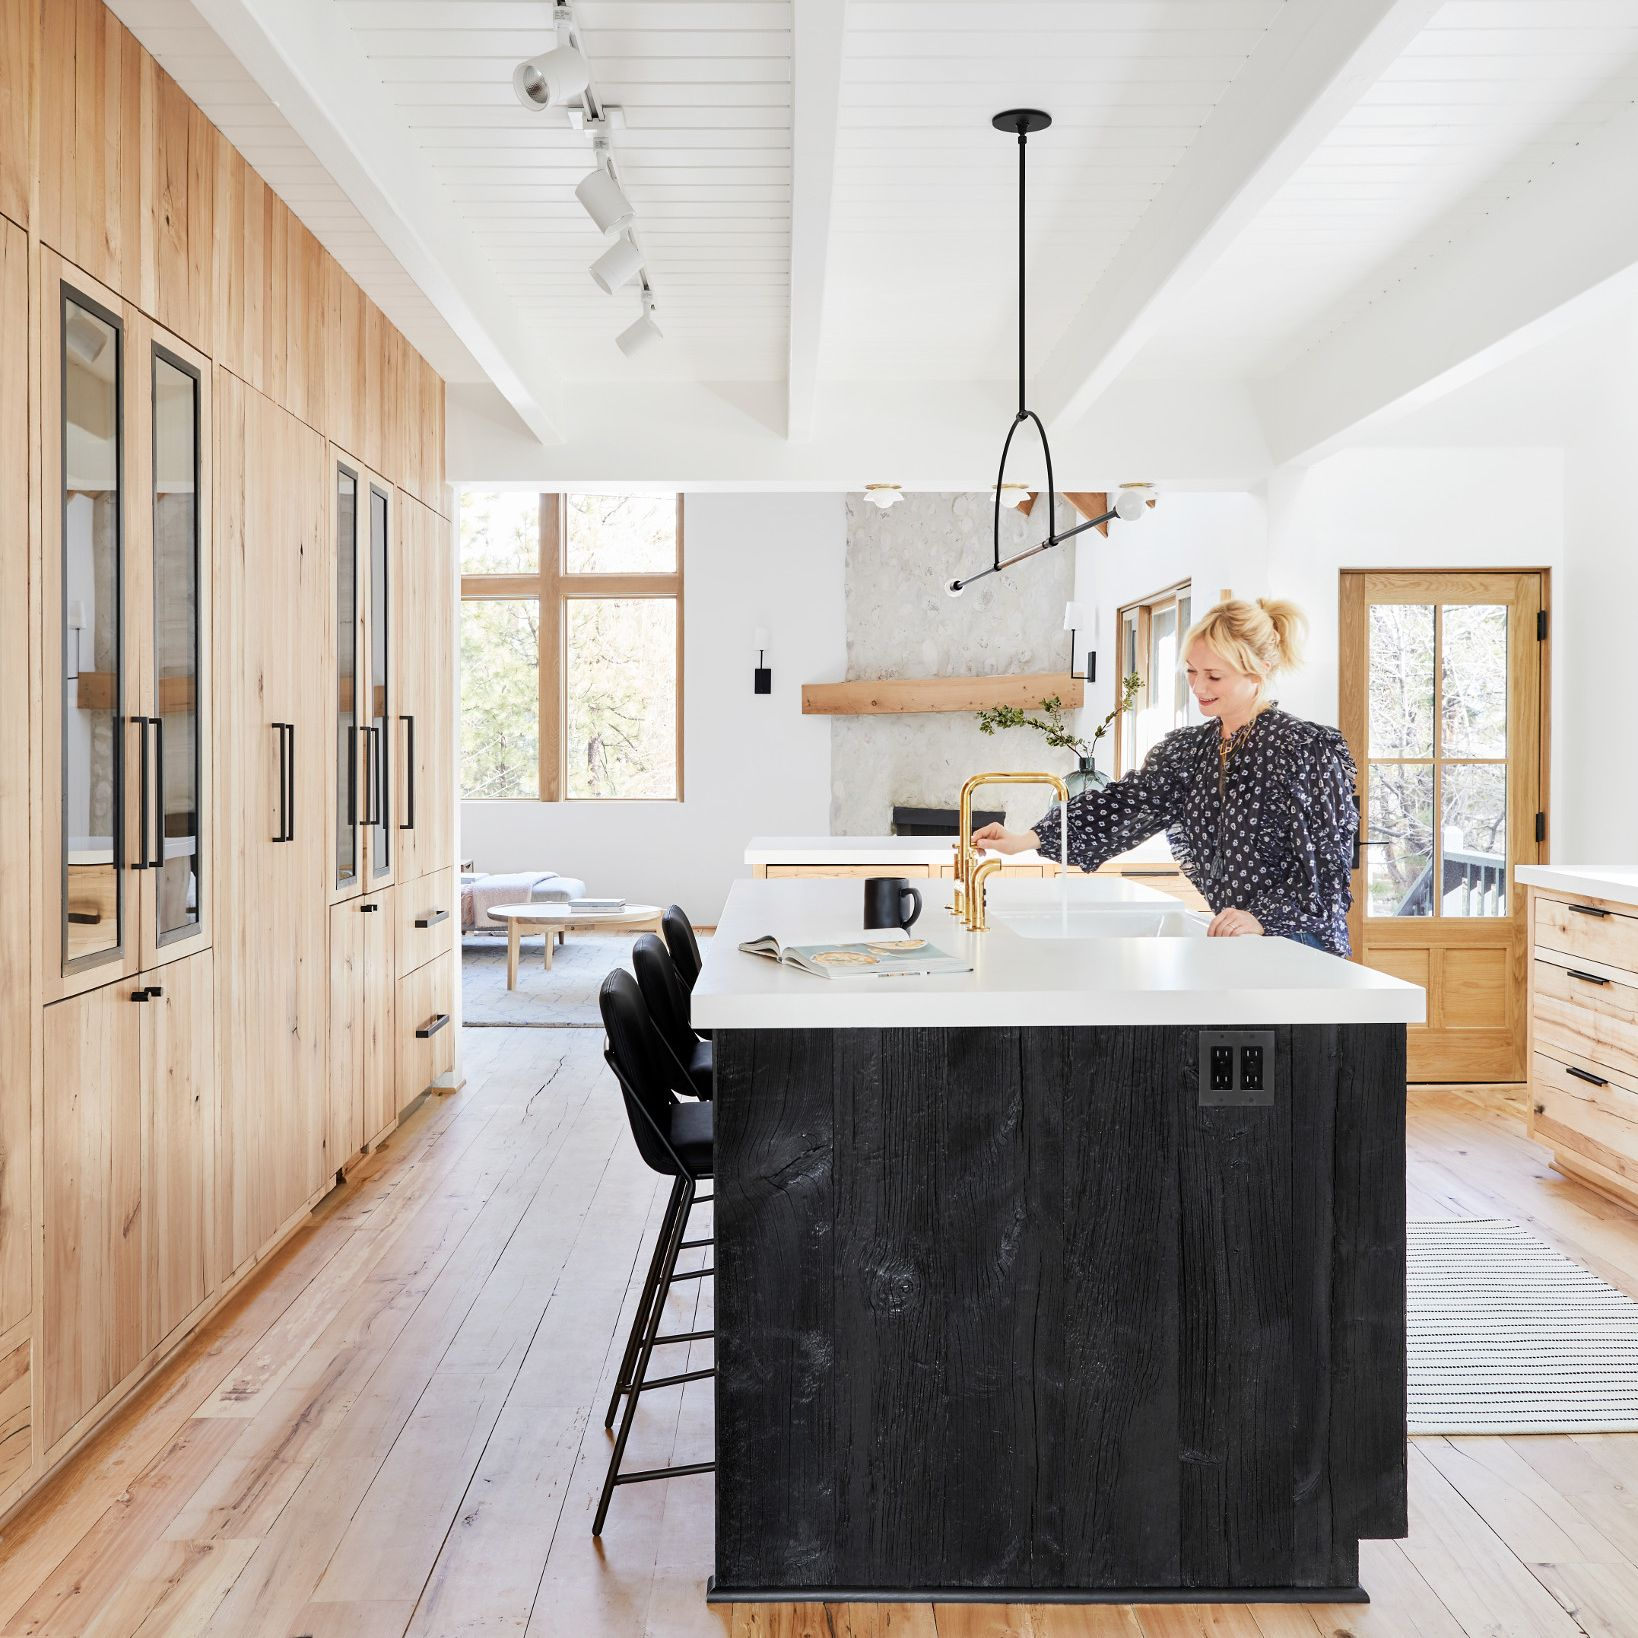 A kitchen with a wood floor  Description automatically generated